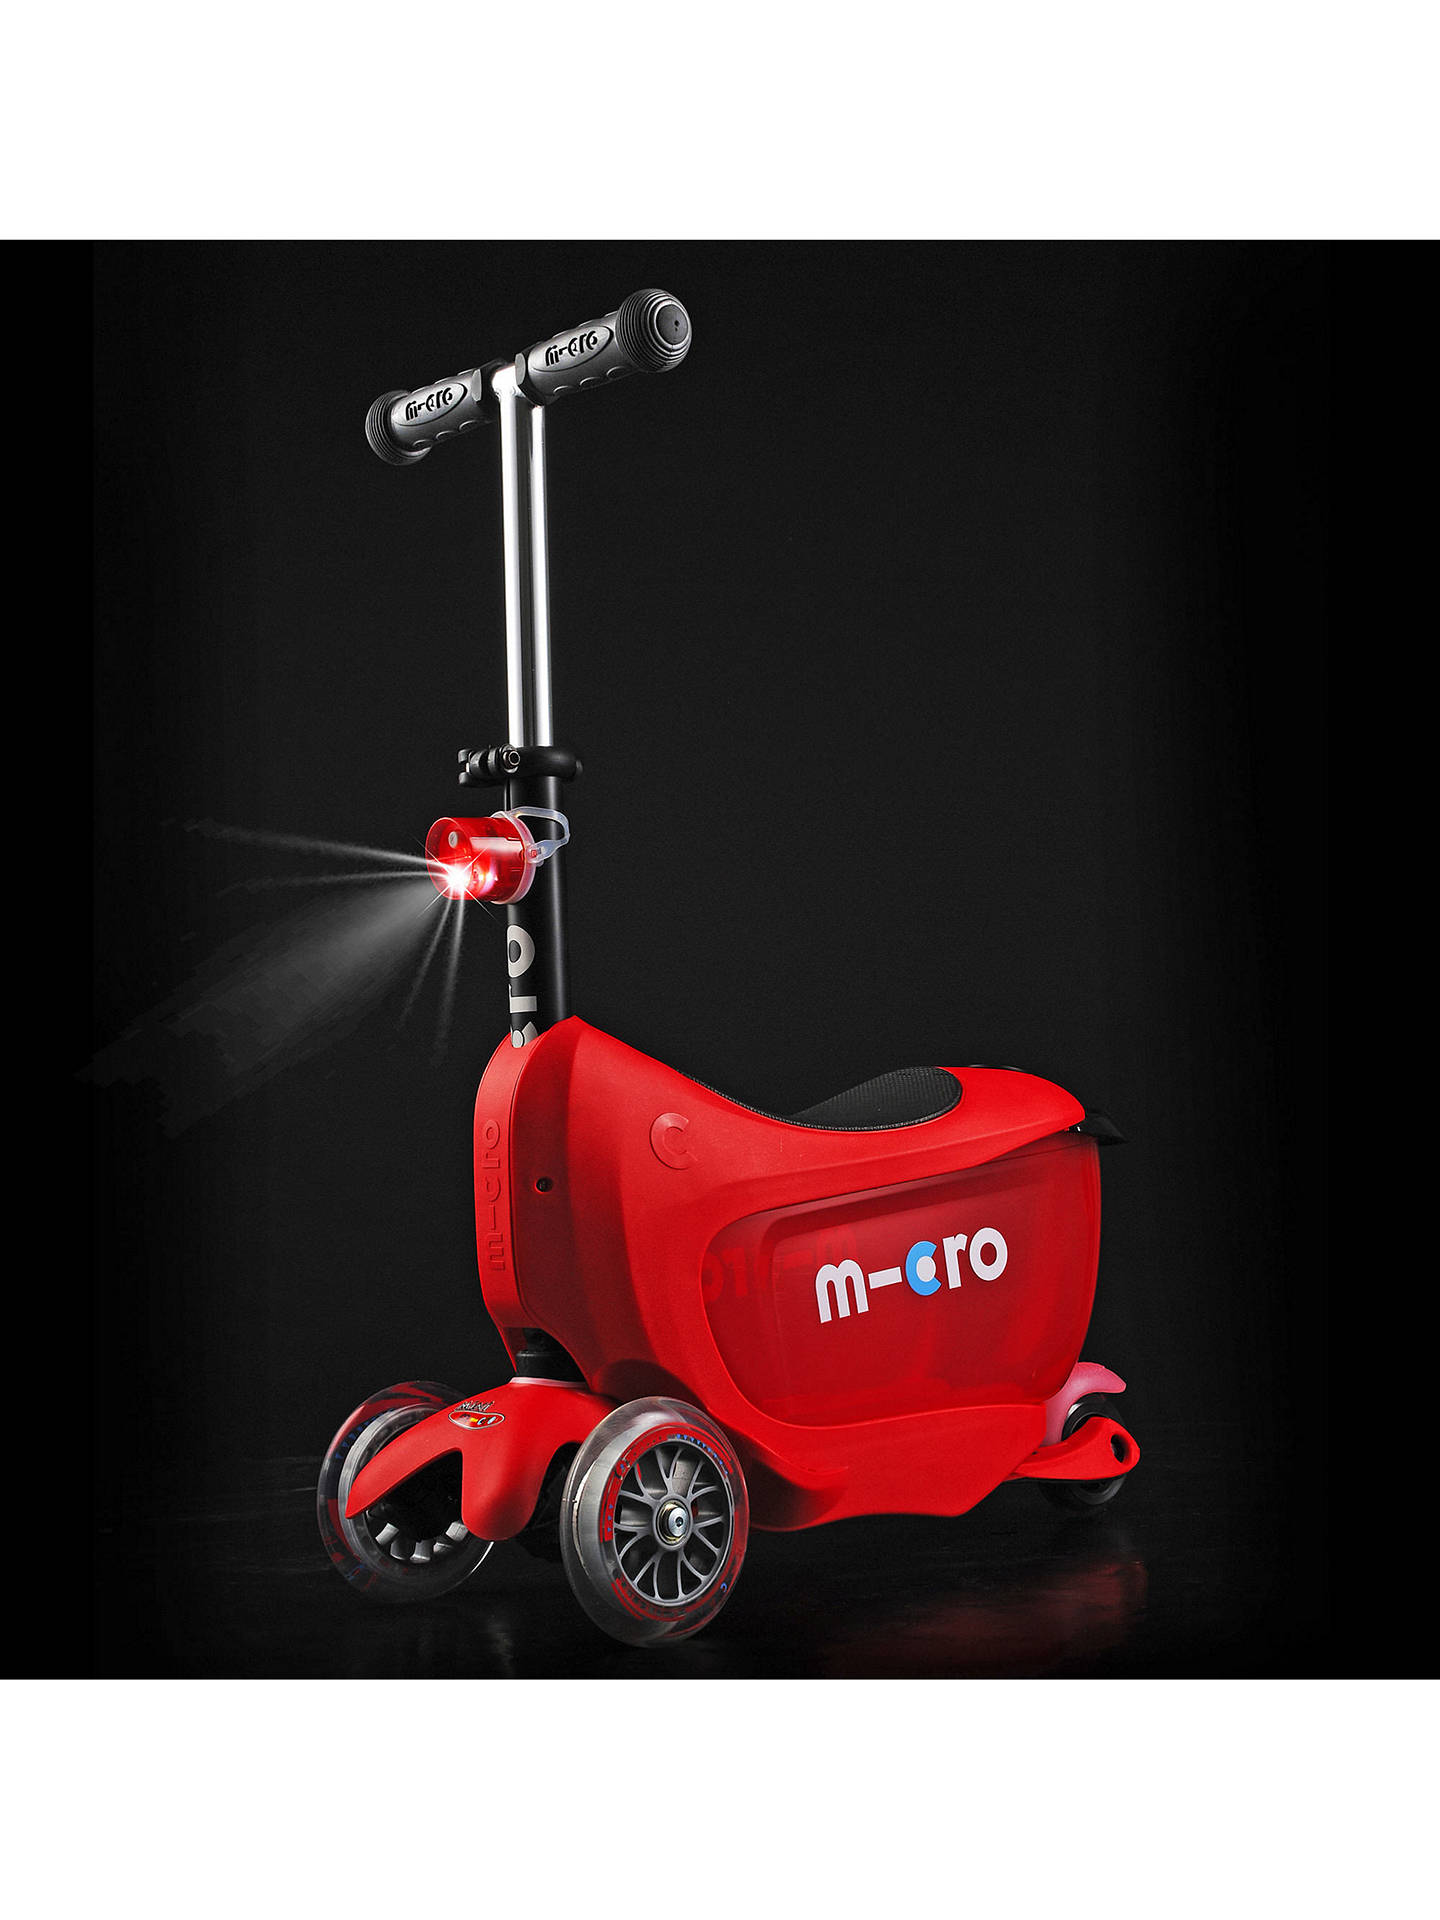 Micro Mini 2 Go Deluxe Scooter 3 5 years at John Lewis & Partners